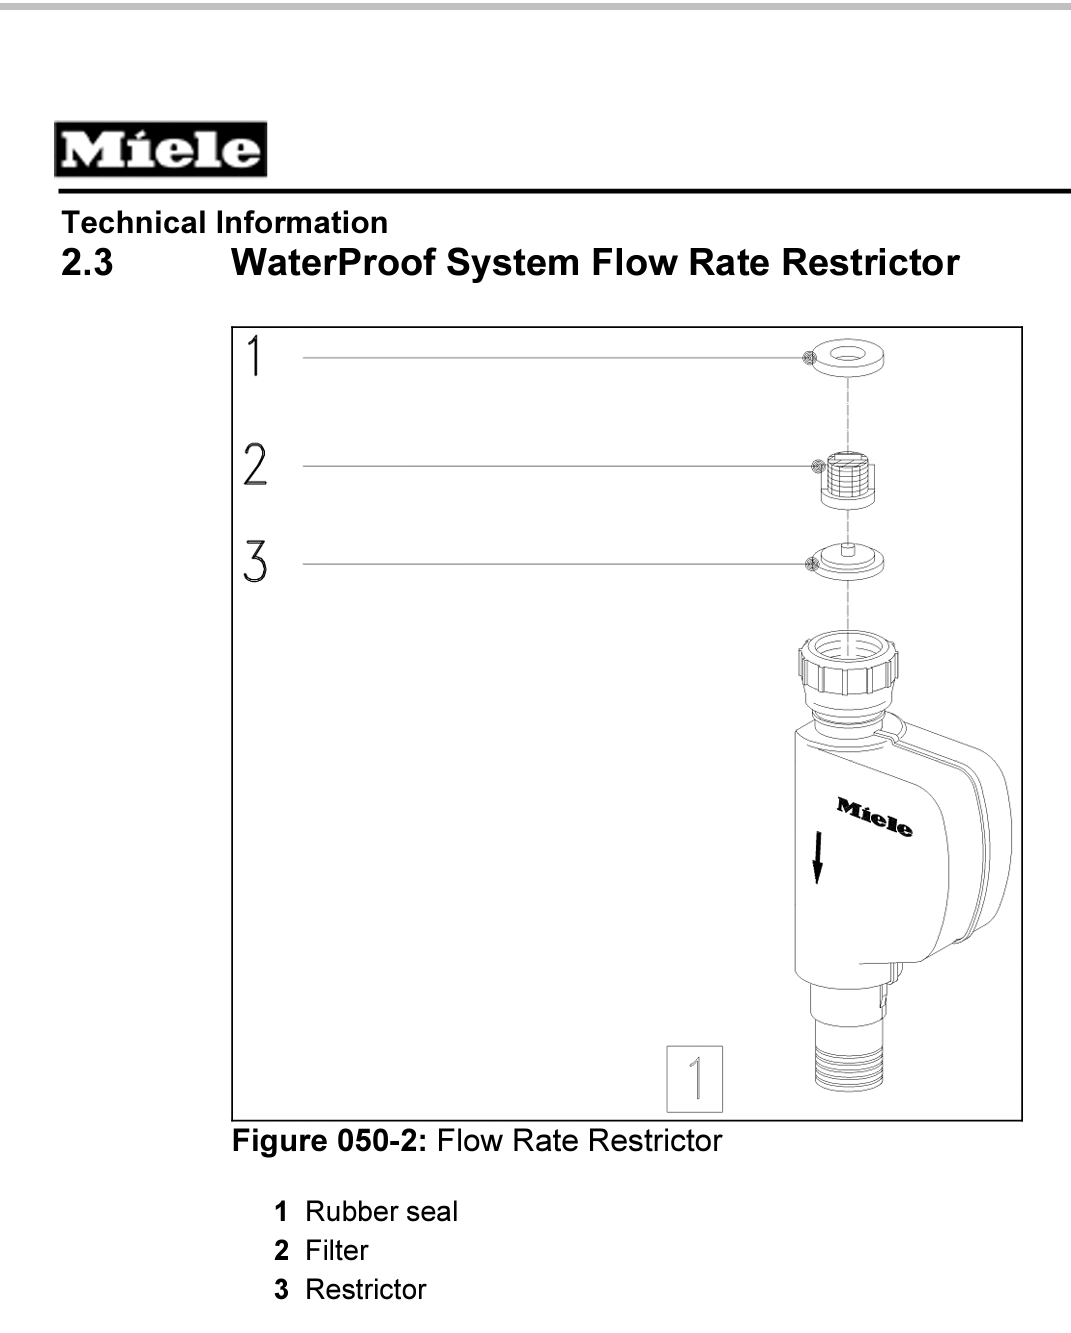 hight resolution of miele dishwasher wps diagram